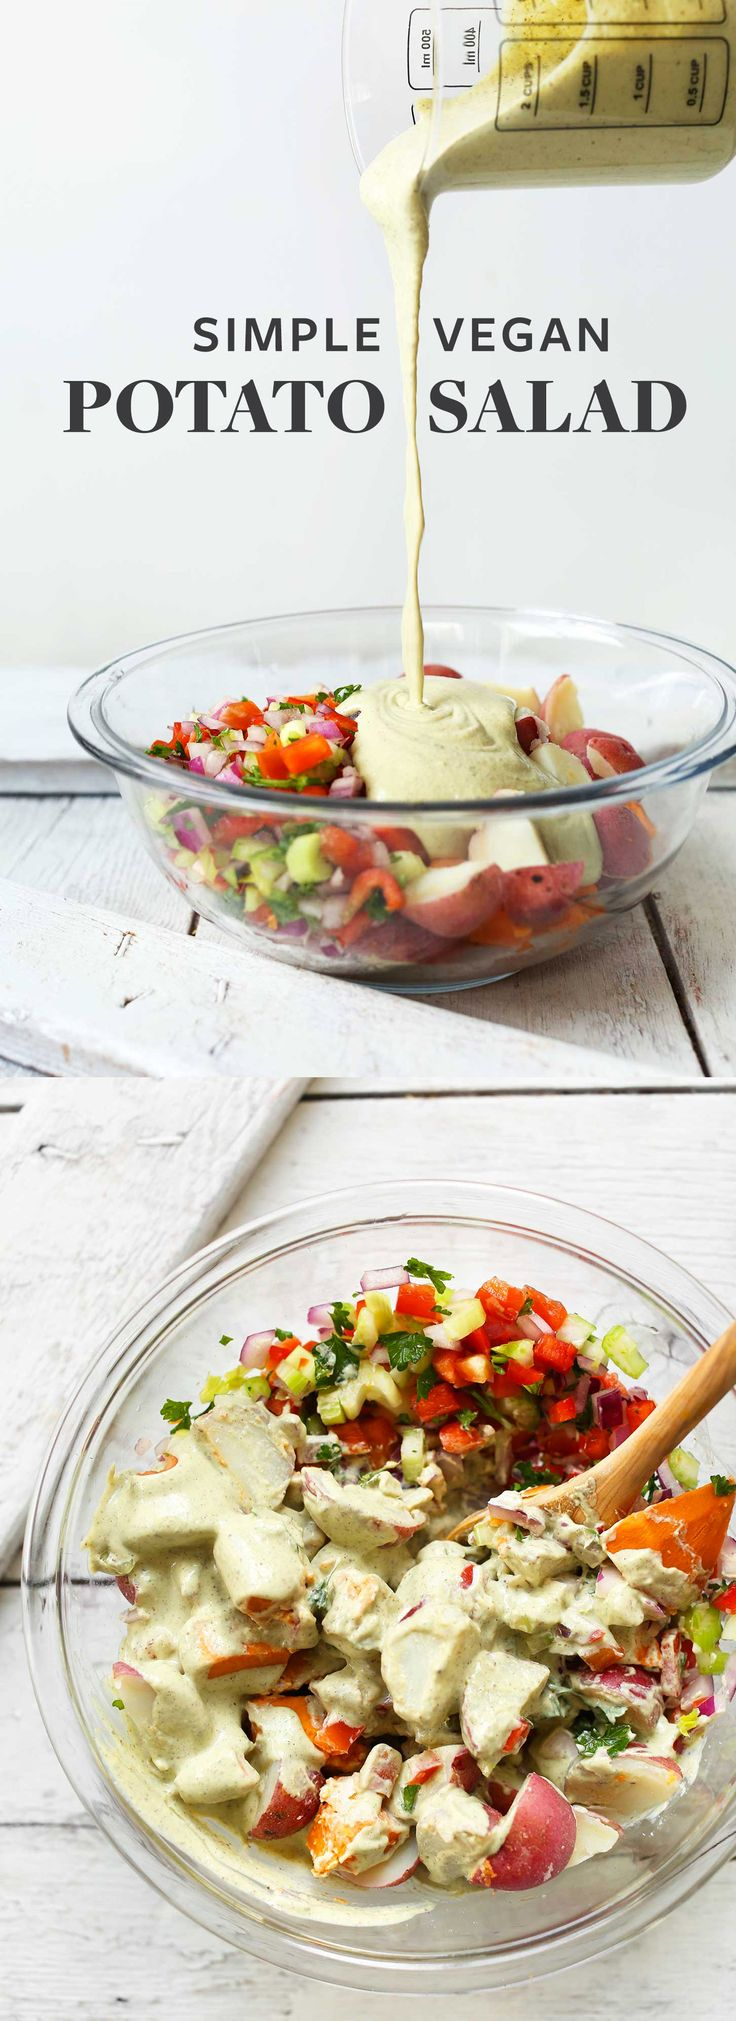 Easy, 10-ingredient vegan potato salad with red potatoes, fresh vegetables, and a tangy garlic-herb cashew sauce! A hearty,